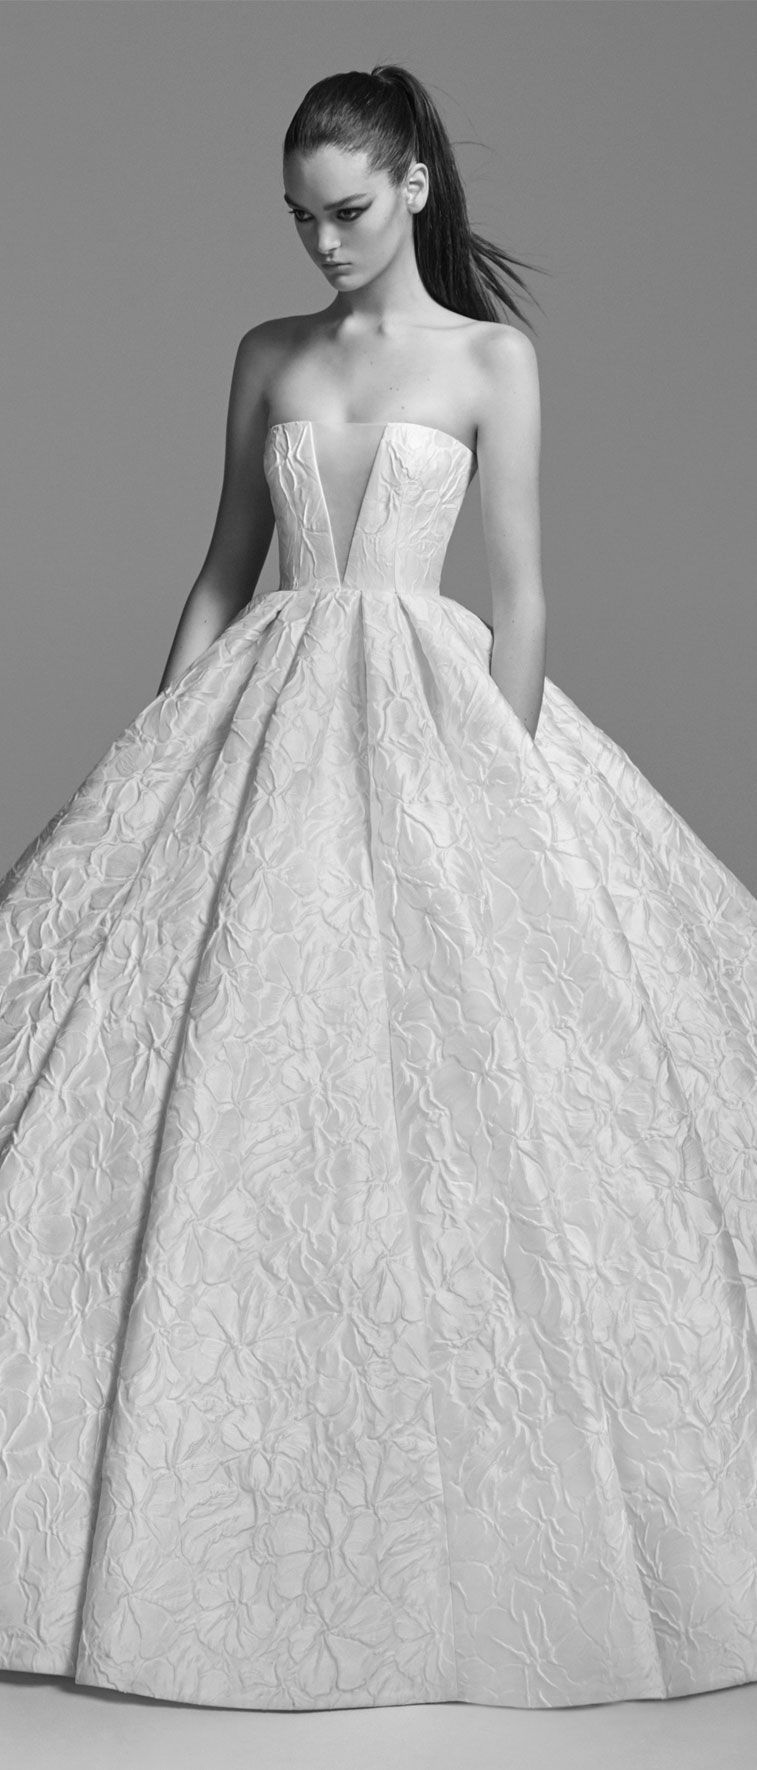 Alex Perry Modern & Glamour Wedding Dresses | Alex perry, Wedding ...